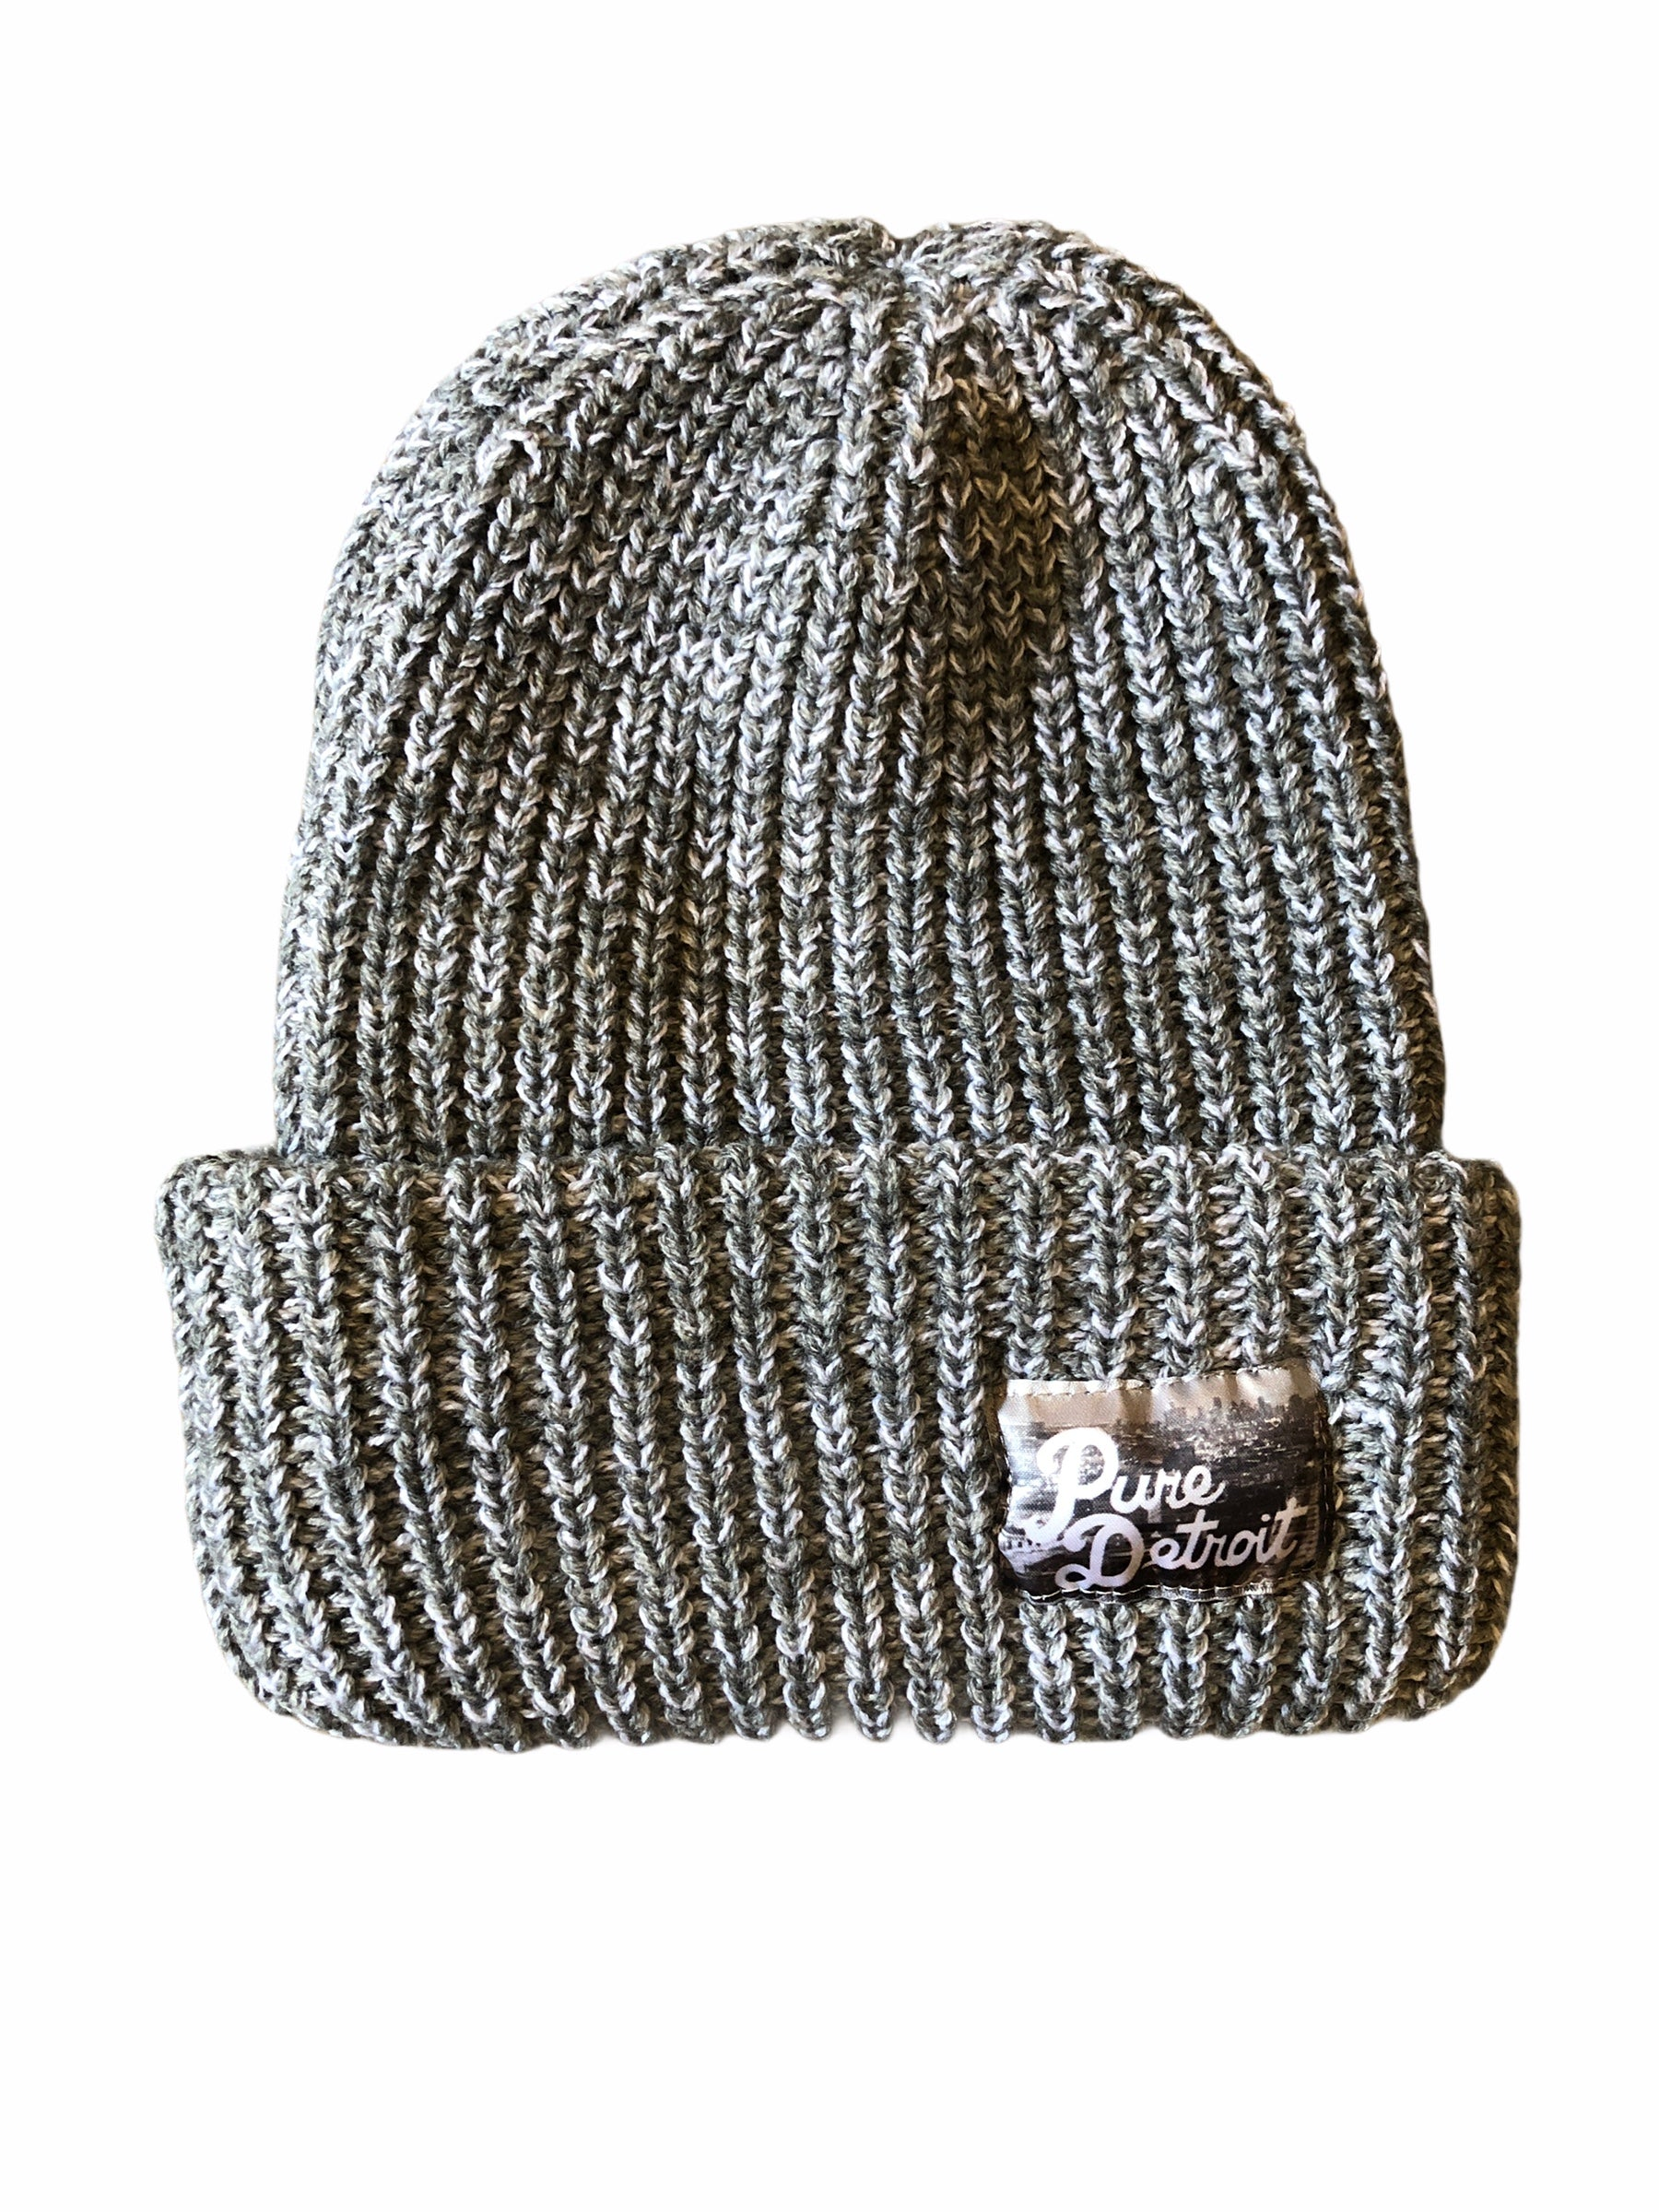 Pure Detroit Chunky Knit Cuffed Beanie / Heather Gray - Pure Detroit